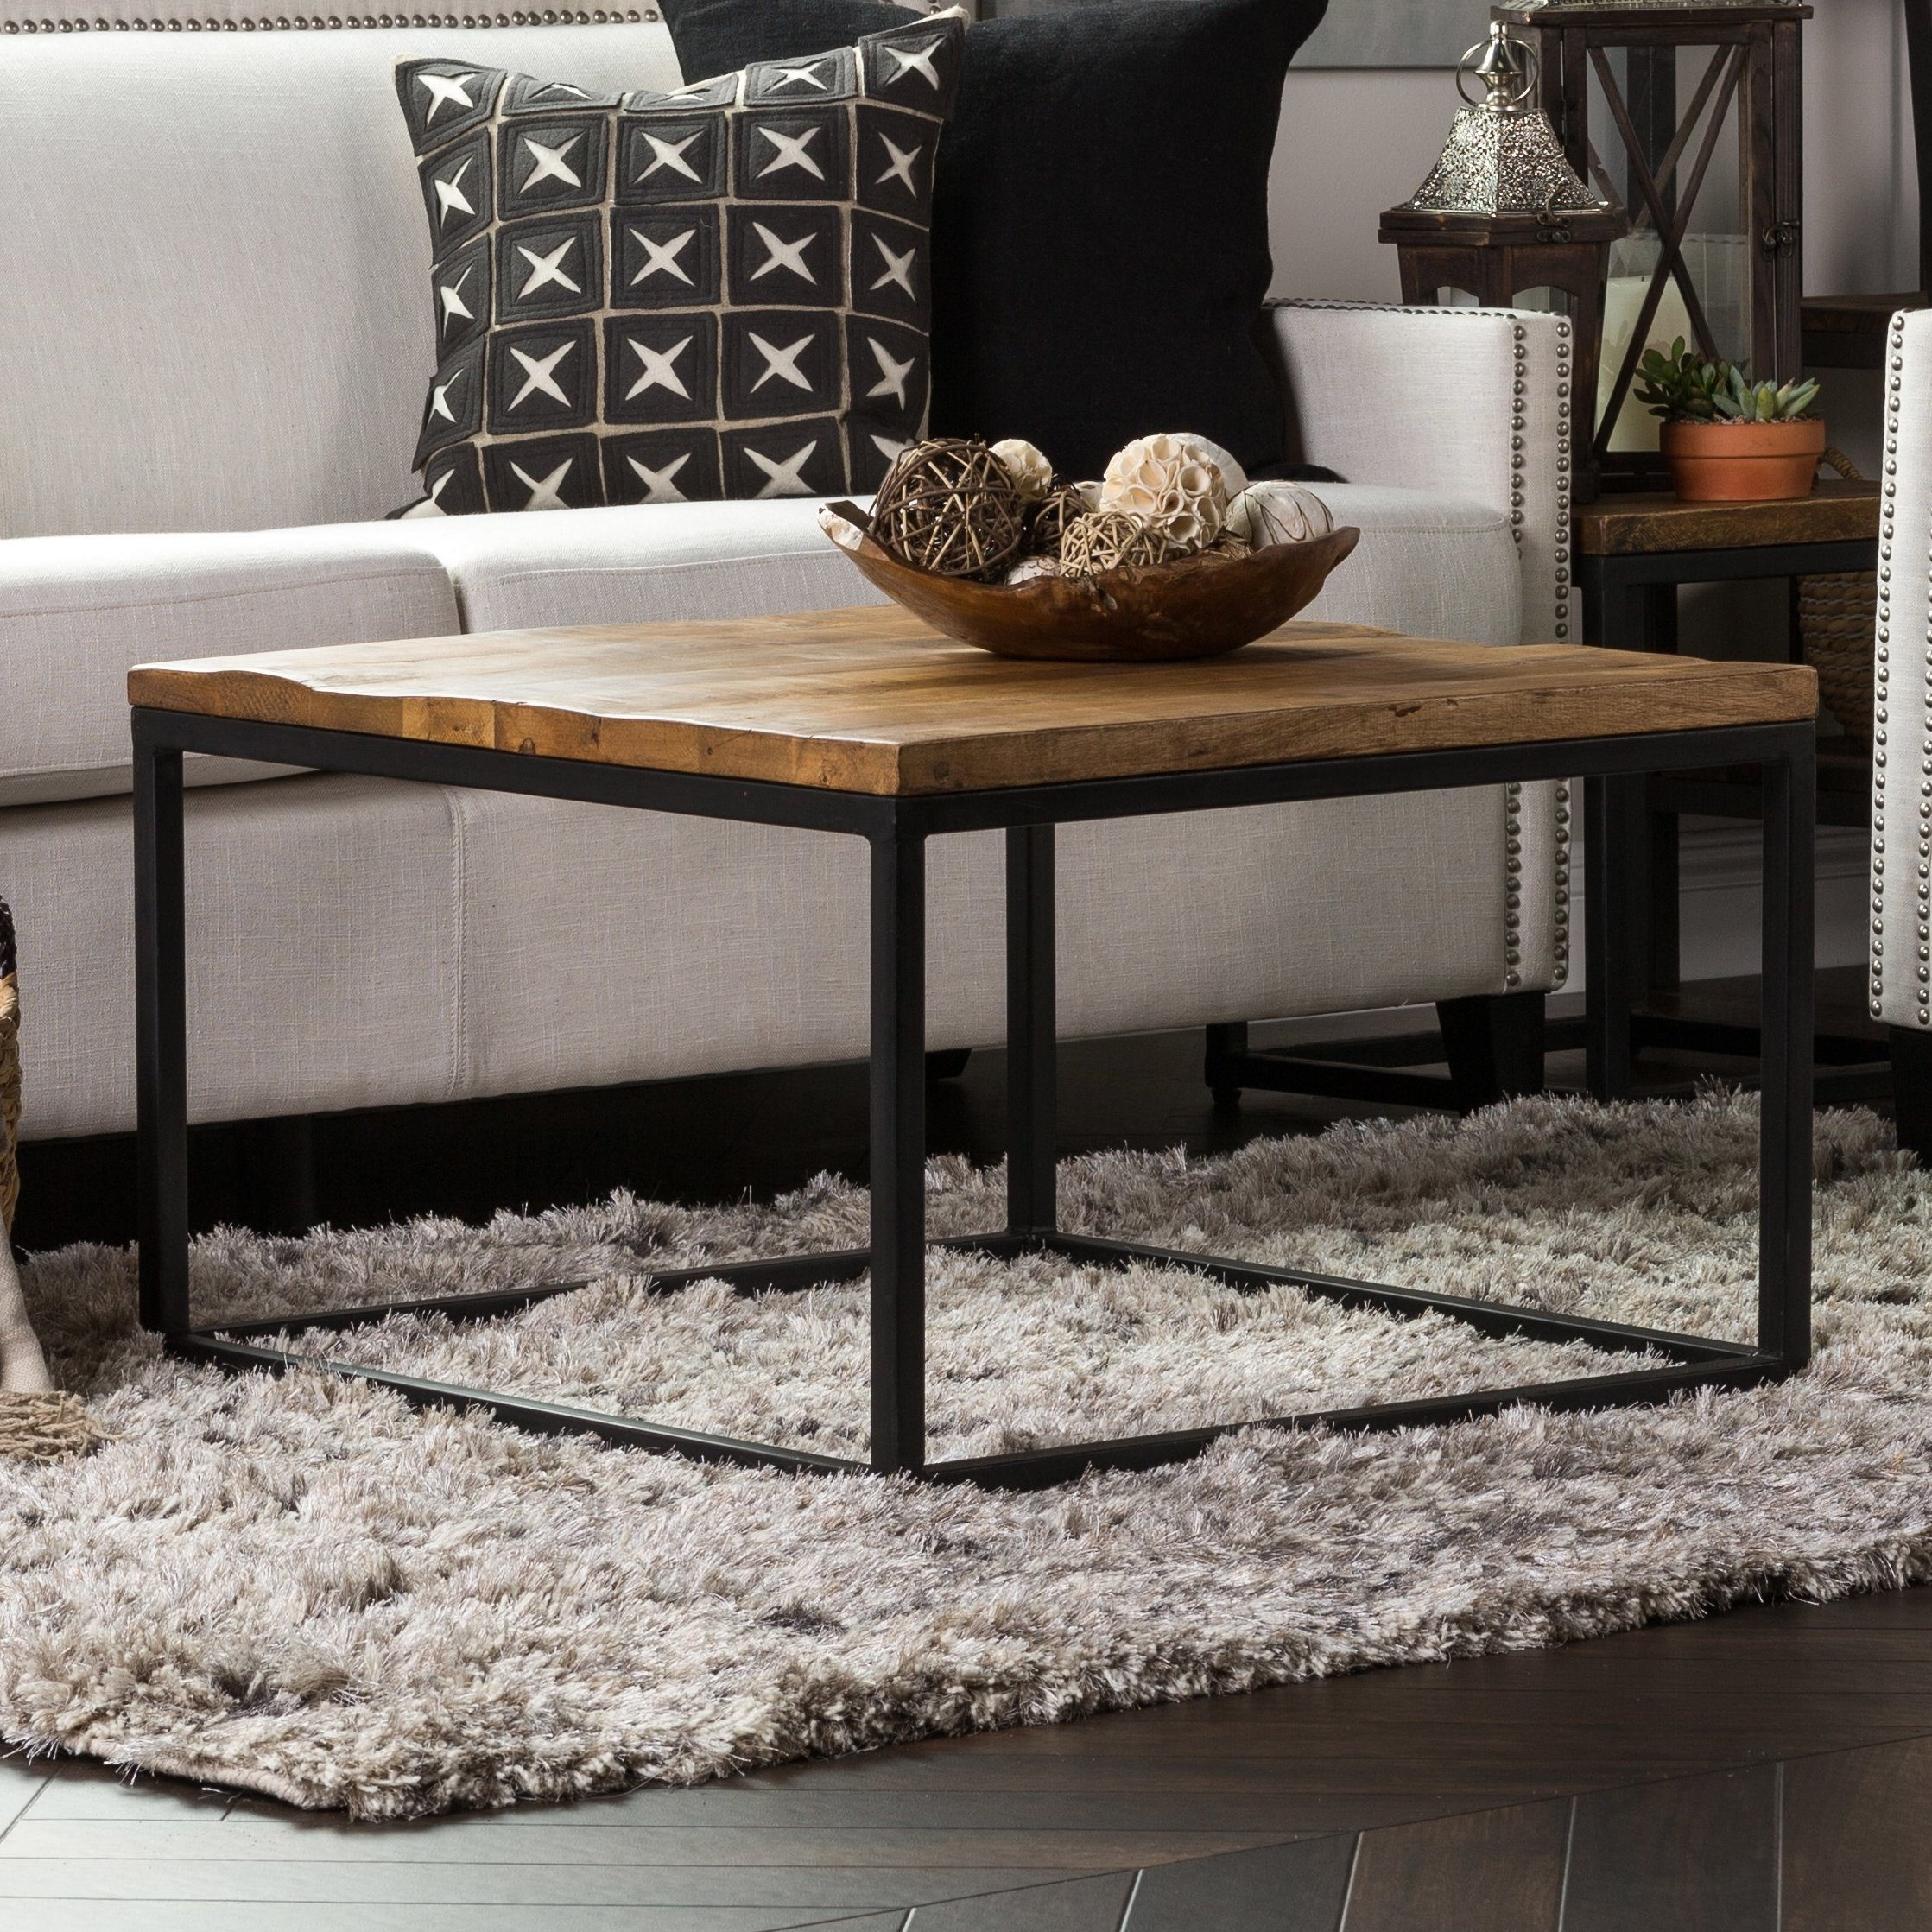 Square Coffee Tables You'll Love | Wayfair Intended For Layered Wood Small Square Console Tables (View 23 of 30)